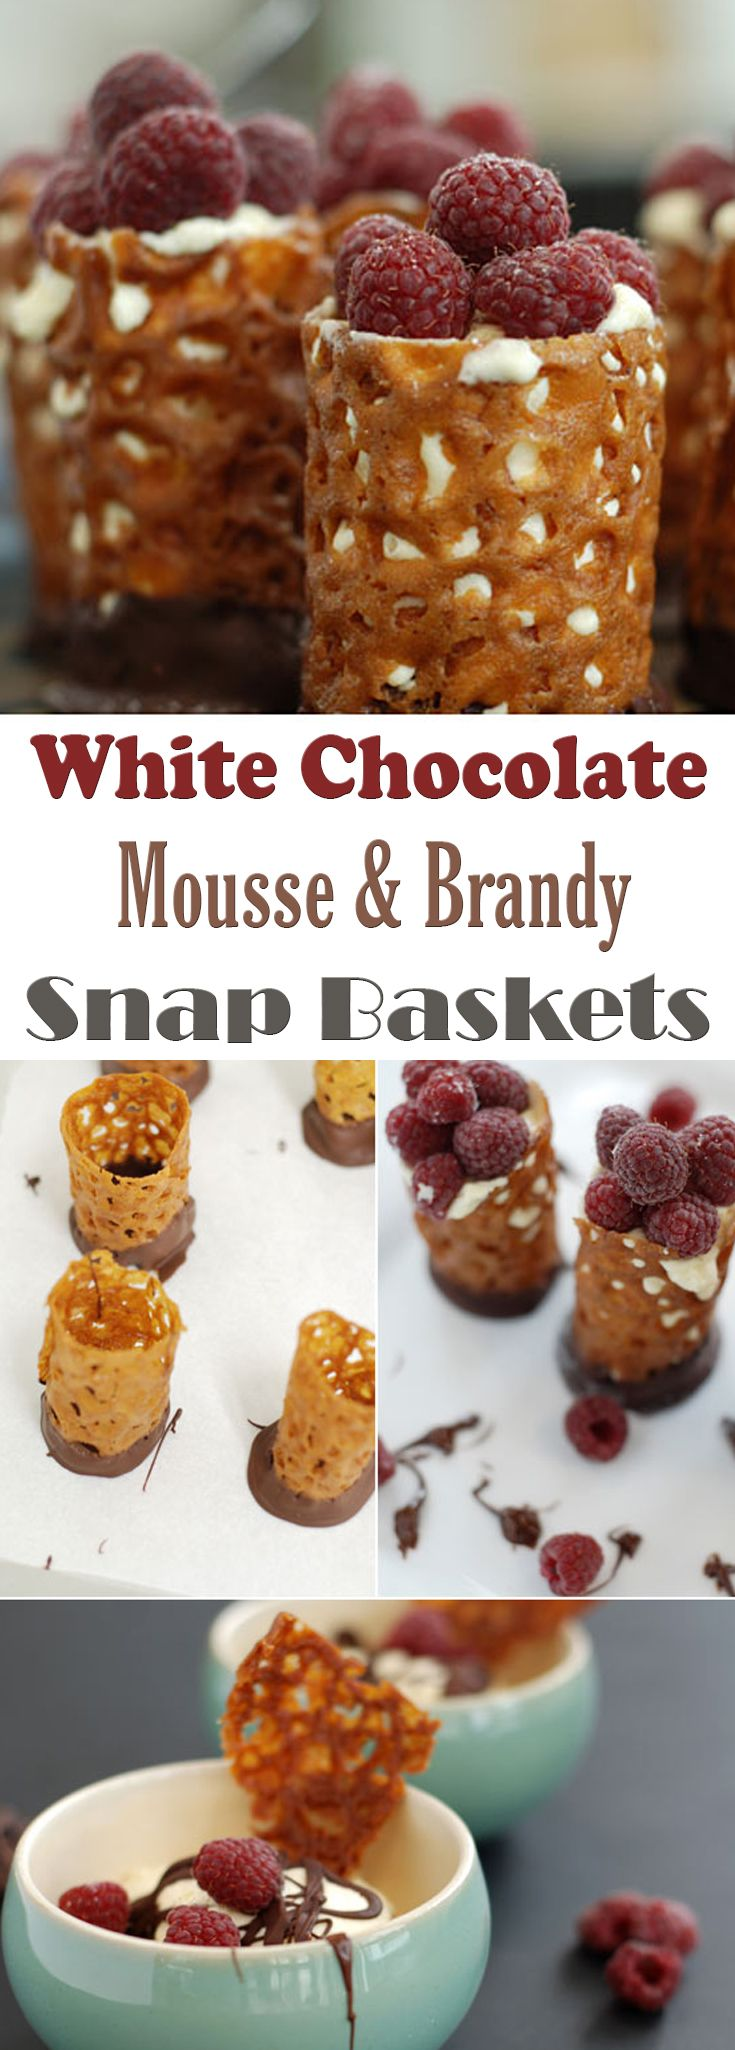 White Chocolate Mousse & Brandy Snap Baskets